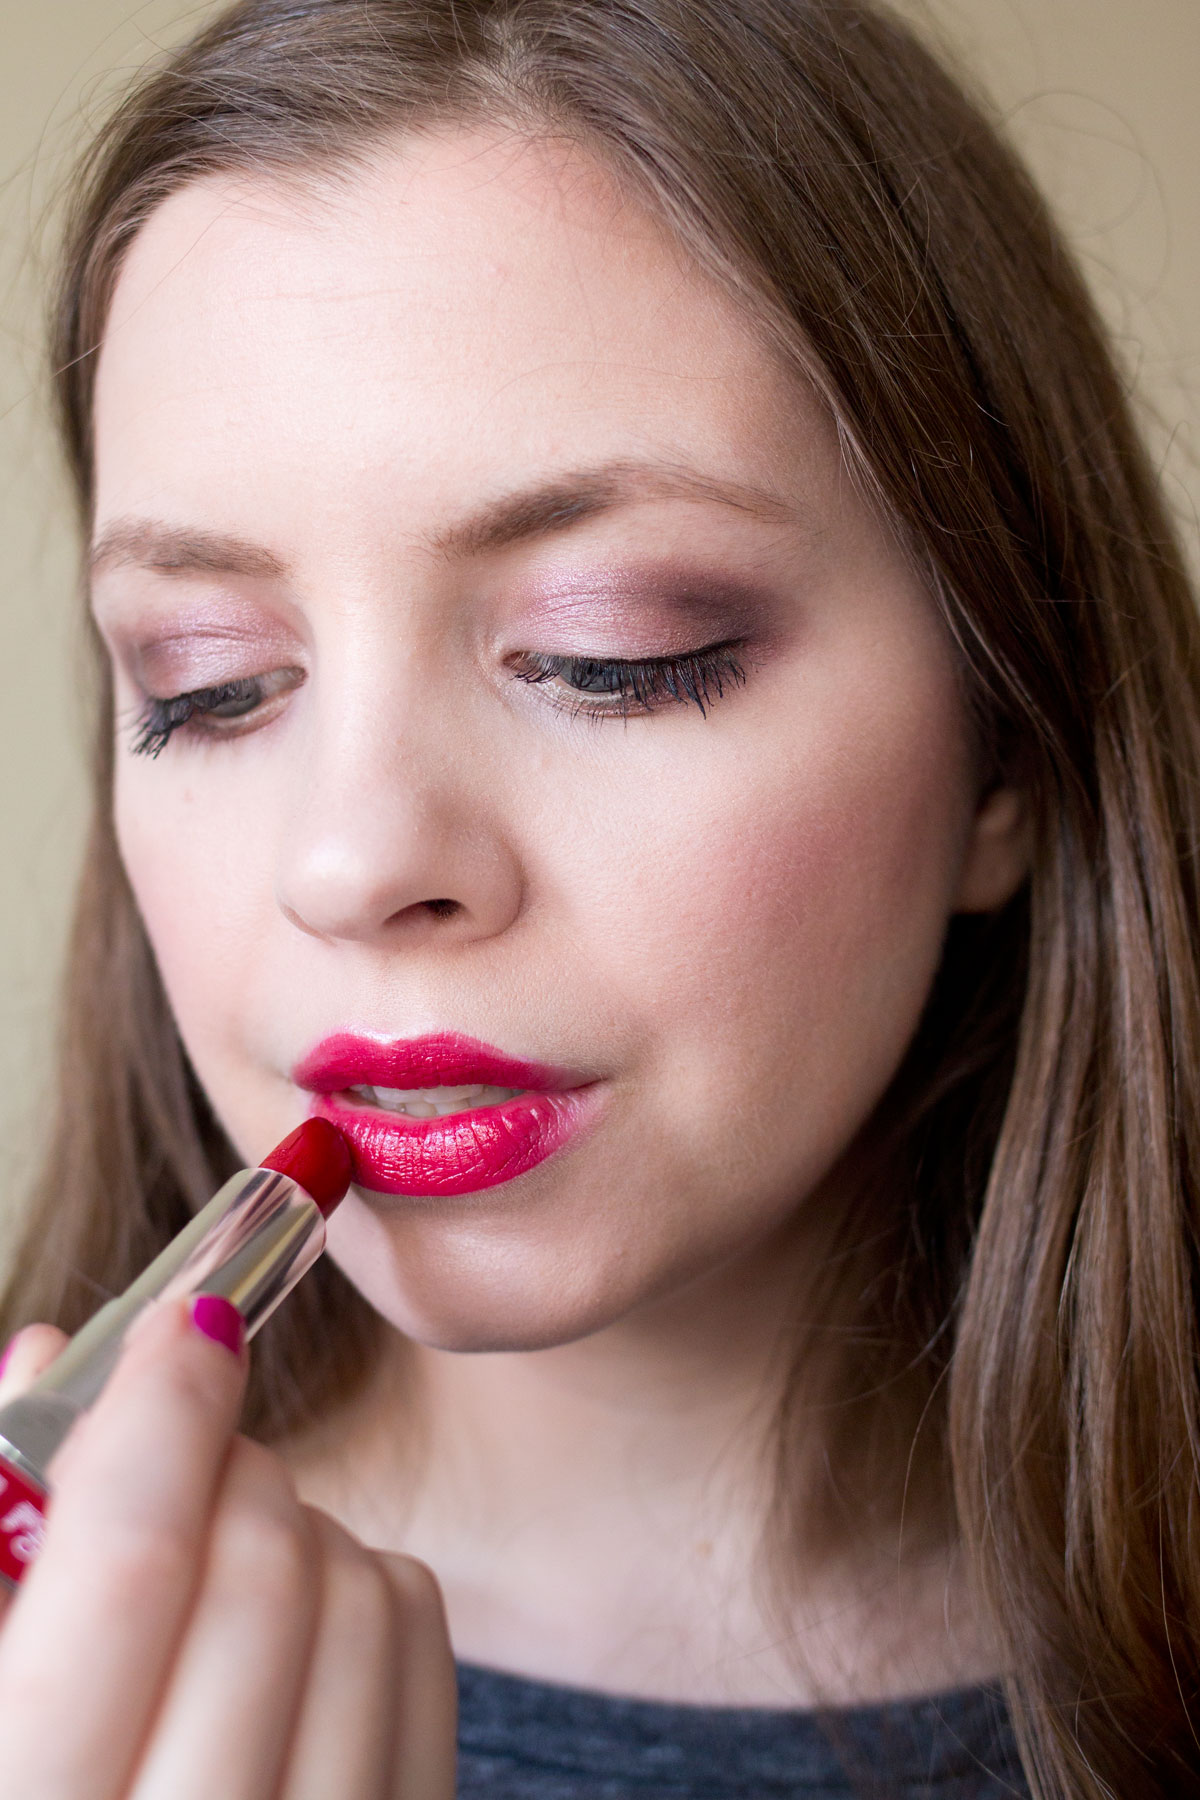 Maybelline Color Sensational LipColor in Red Revival & Swatch // Valentine's Day Makeup Tutorial // Hello Rigby Seattle Beauty Blog